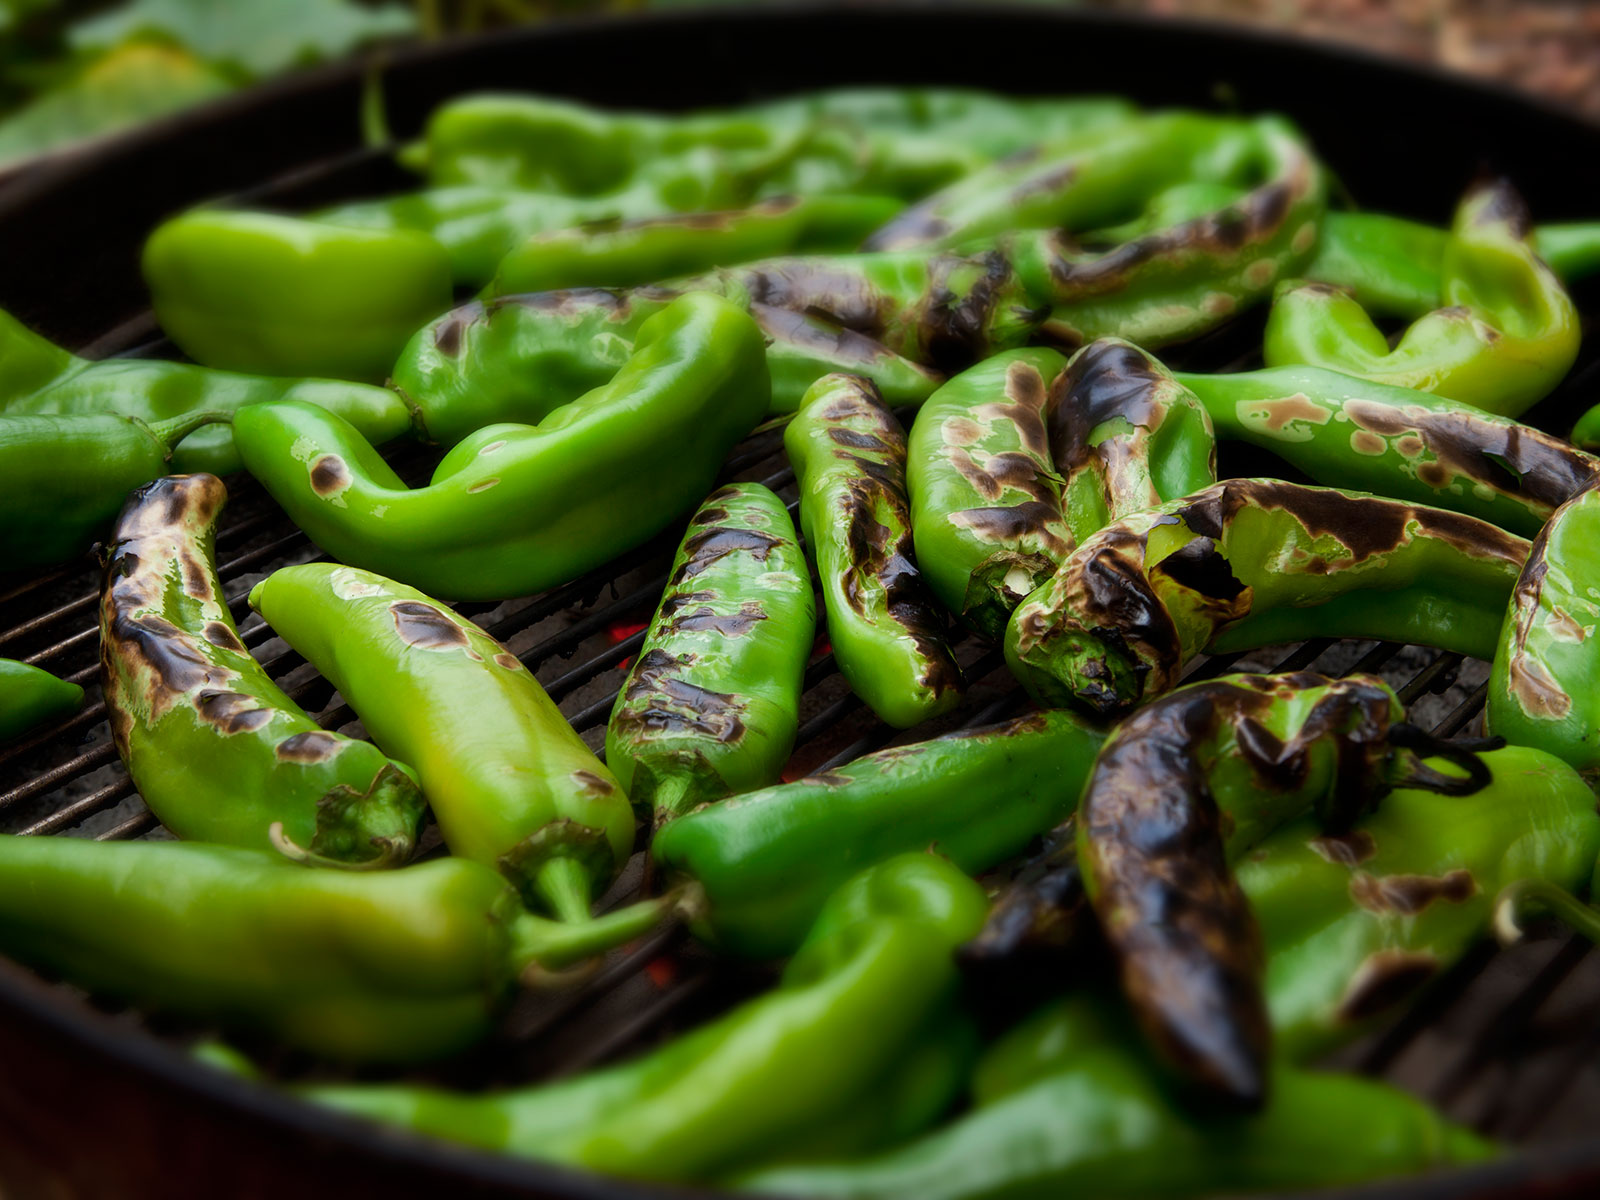 If You Can't Get to the Hatch Chile Festival This Weekend, Have Your Own Hatch Chile Festival Instead